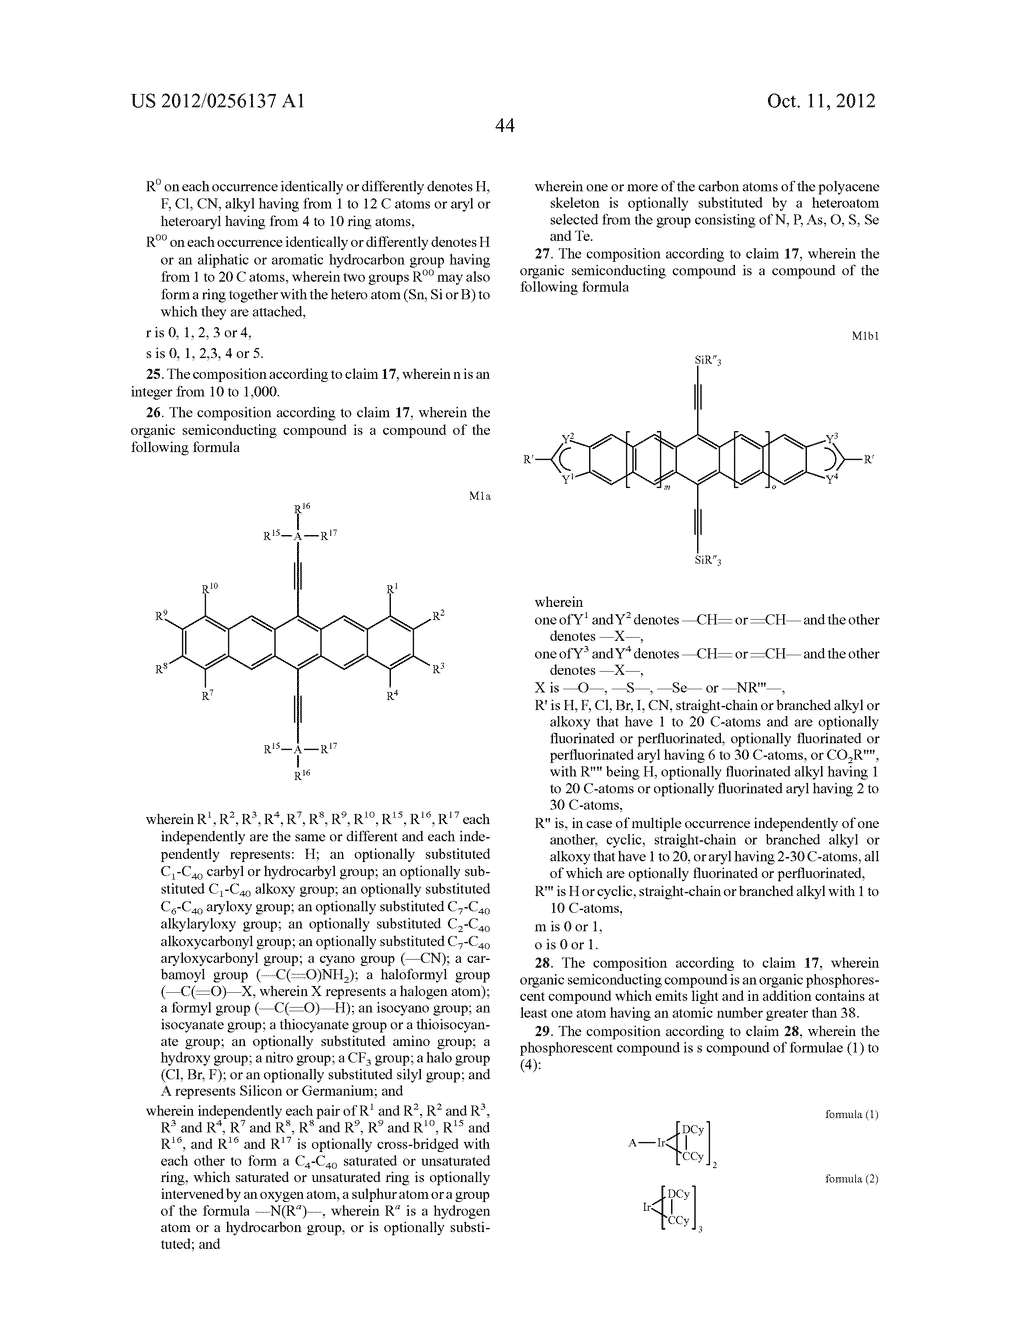 COMPOSITIONS COMPRISING ORGANIC SEMICONDUCTING COMPOUNDS - diagram, schematic, and image 55